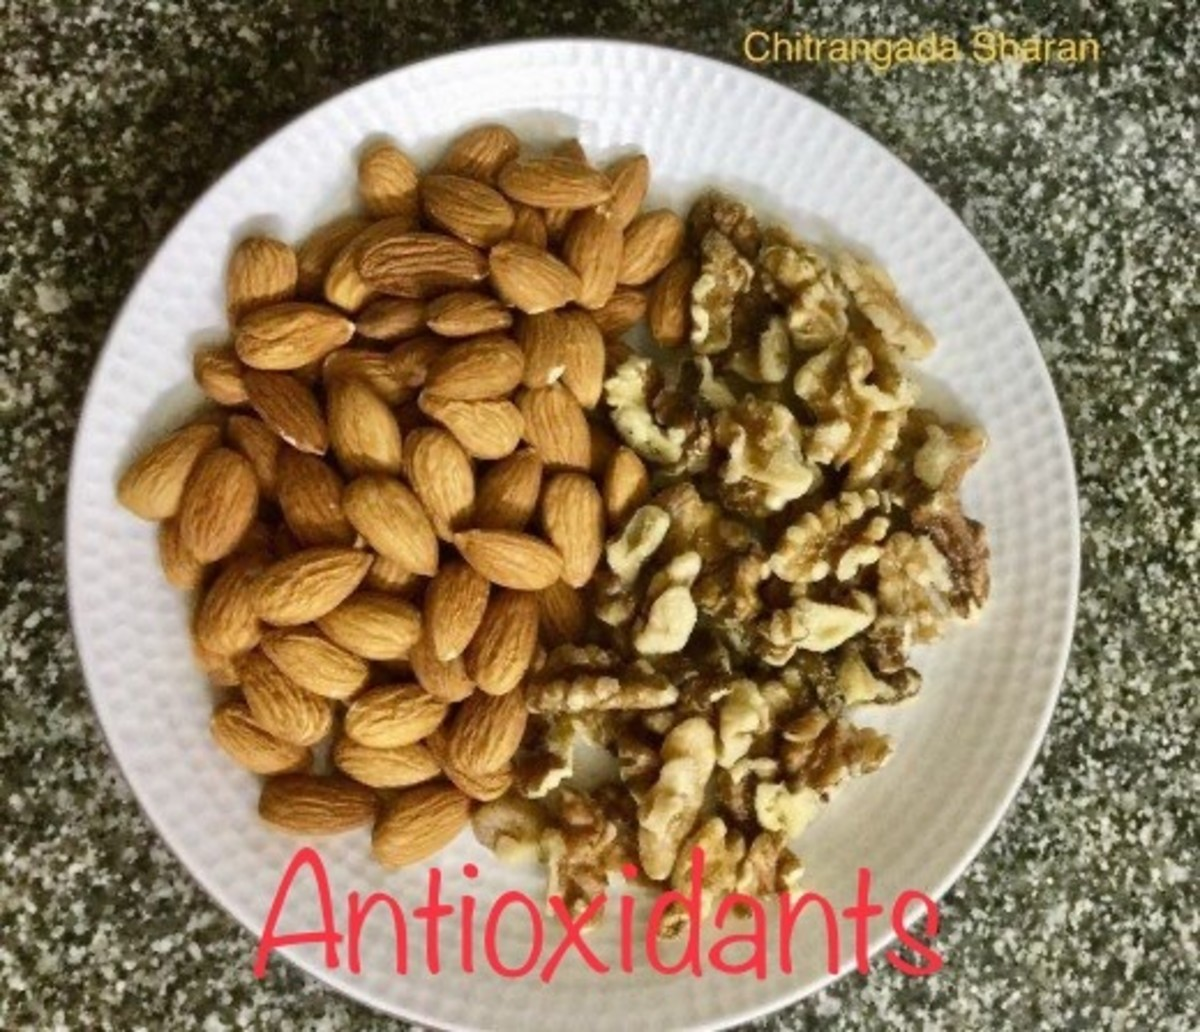 Almonds, walnuts and nuts in general are rich sources of antioxidants